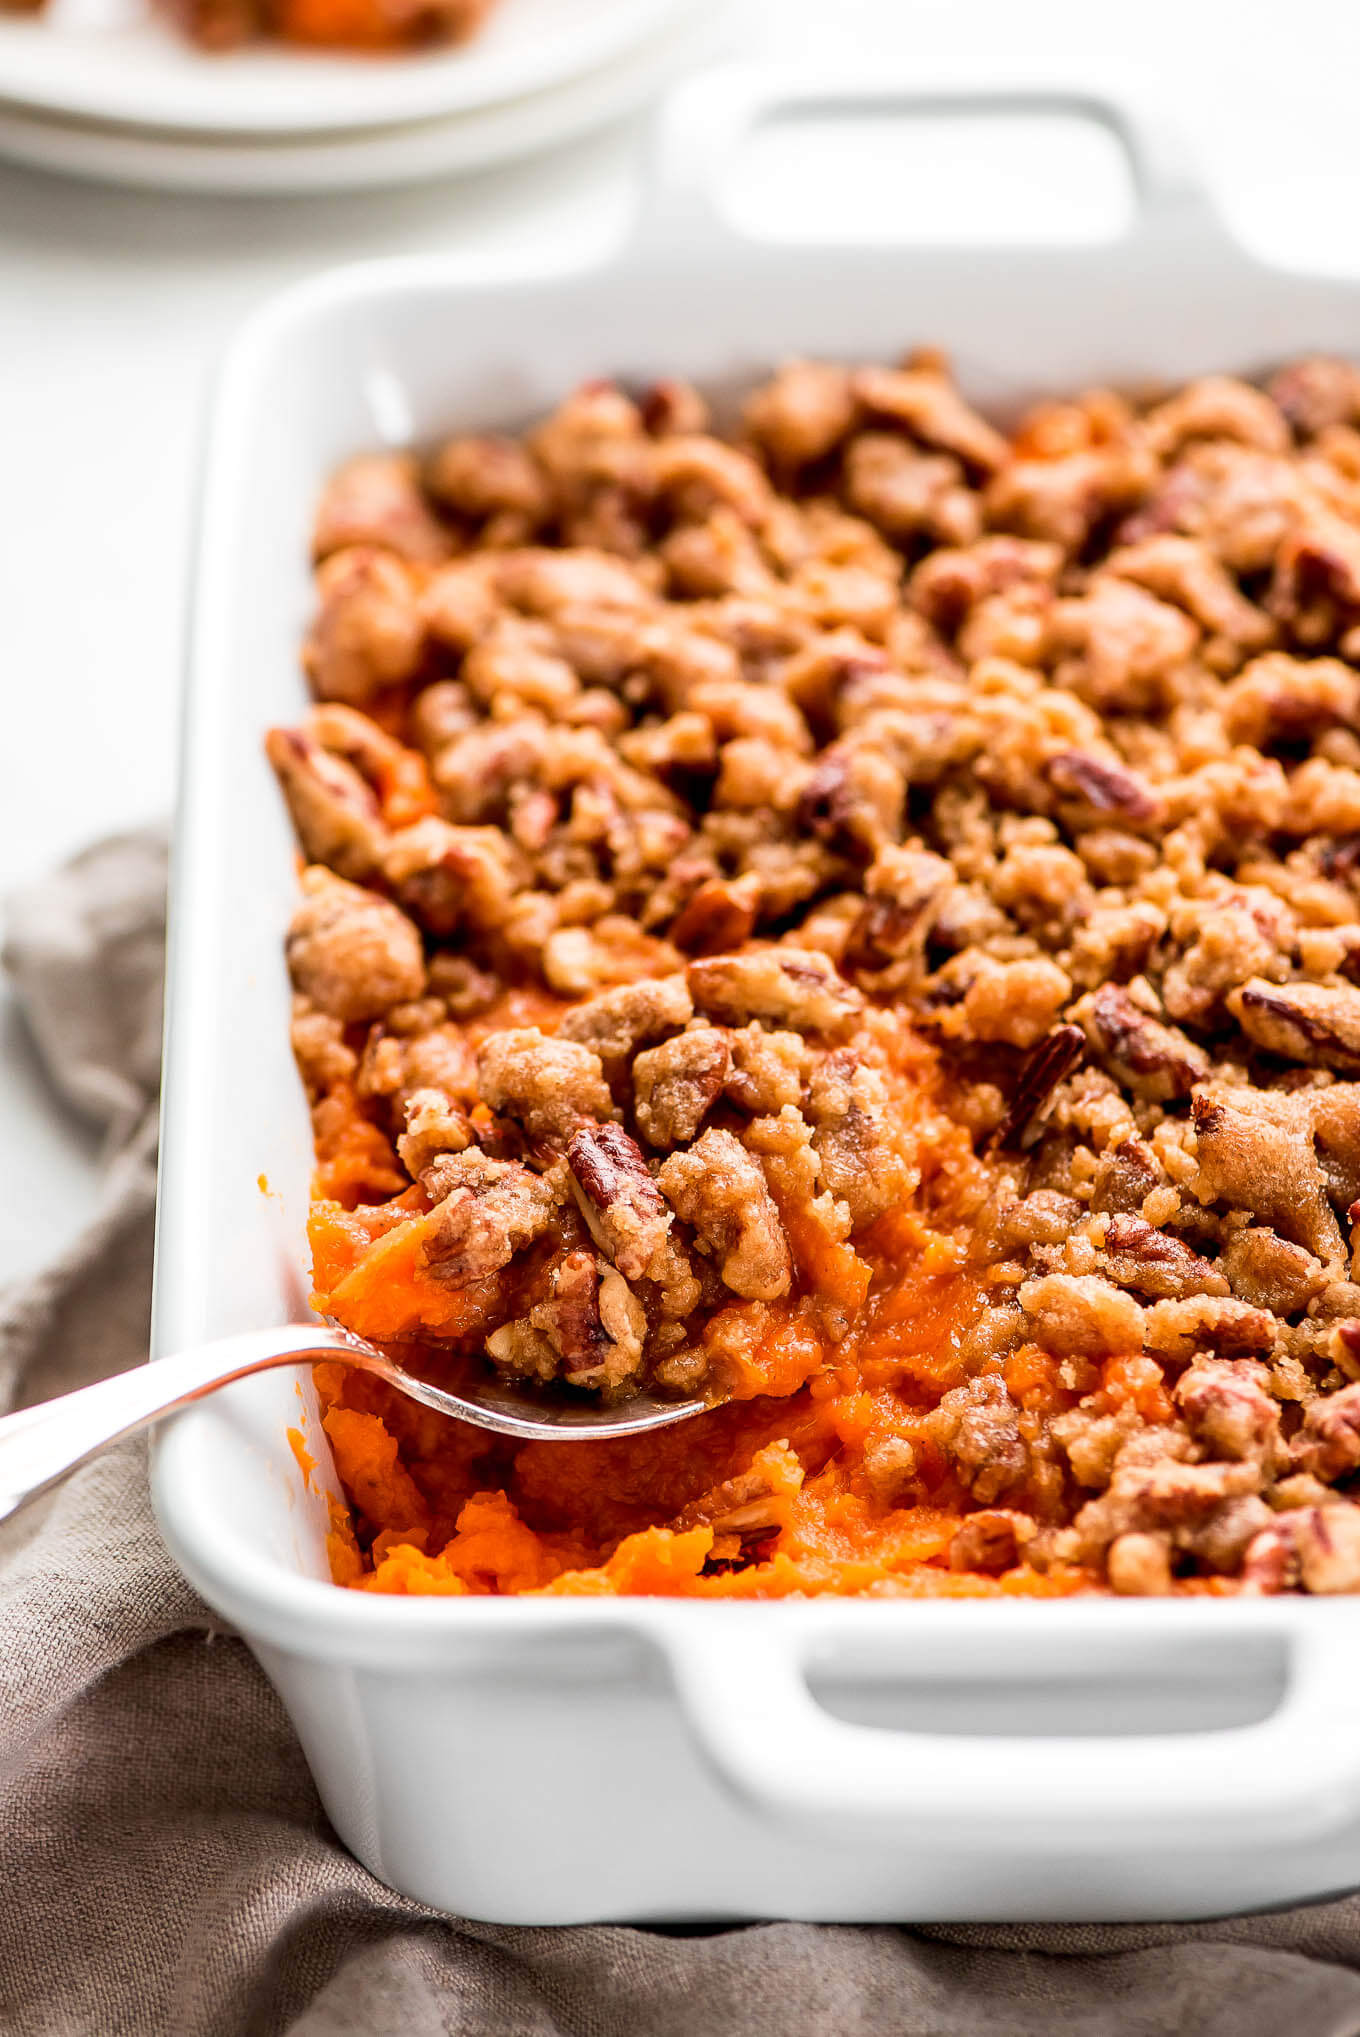 A spoon scooping out sweet potatoes out of a casserole dish.